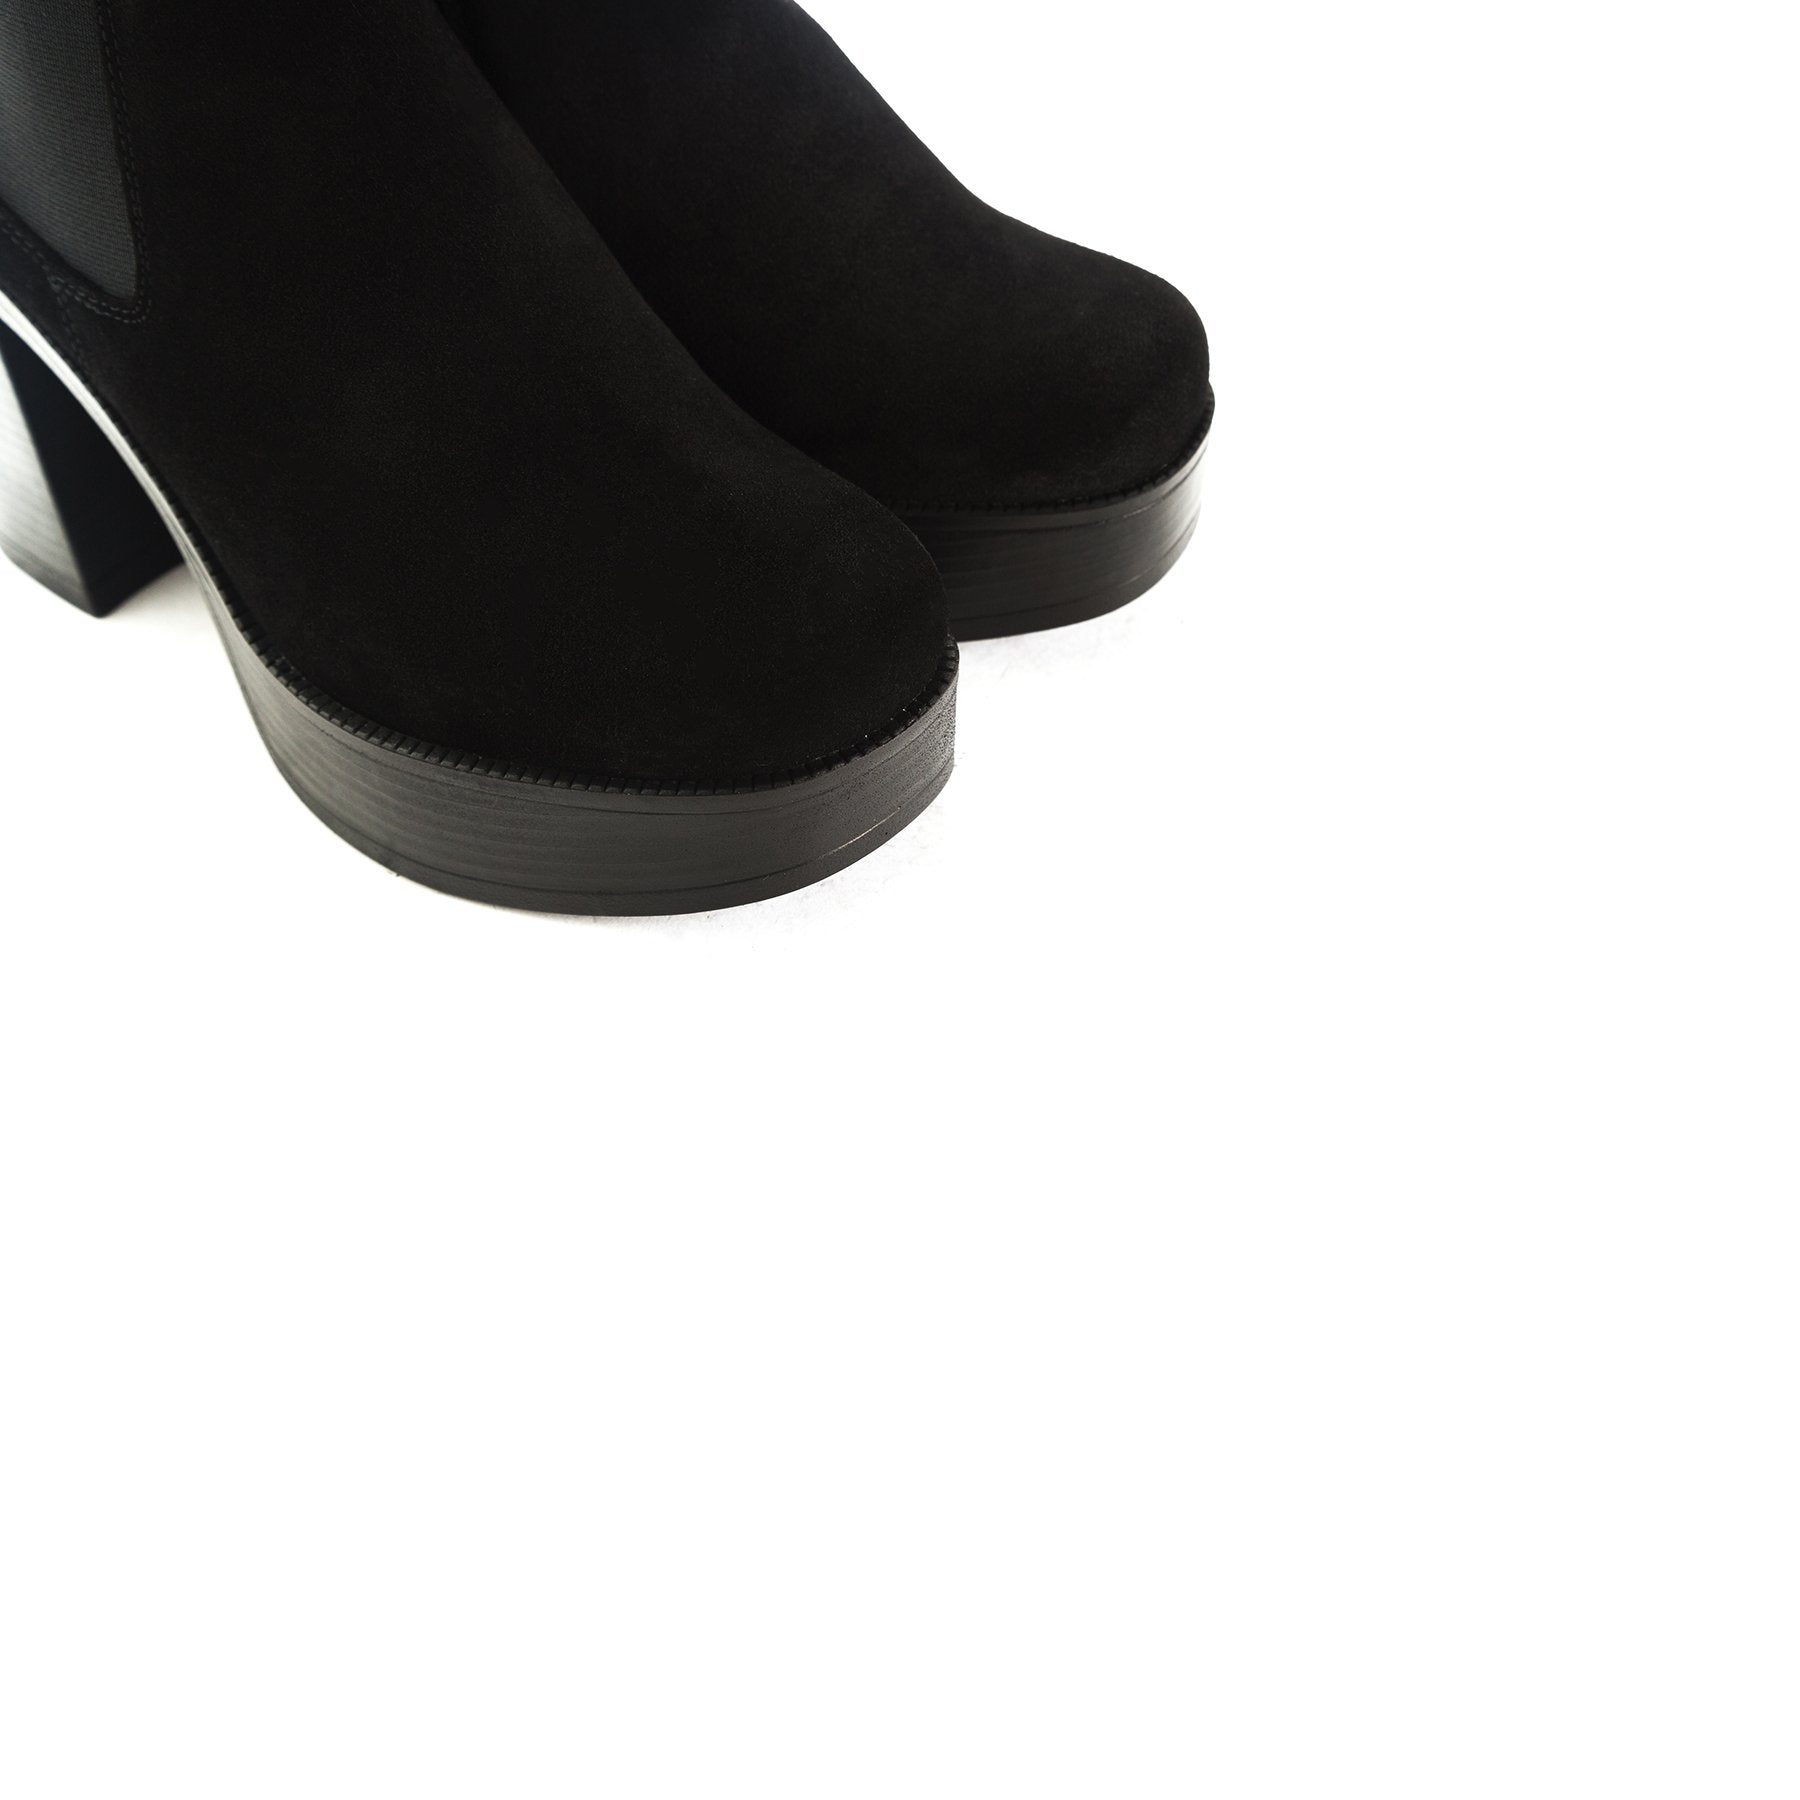 Sally Black Suede Boots